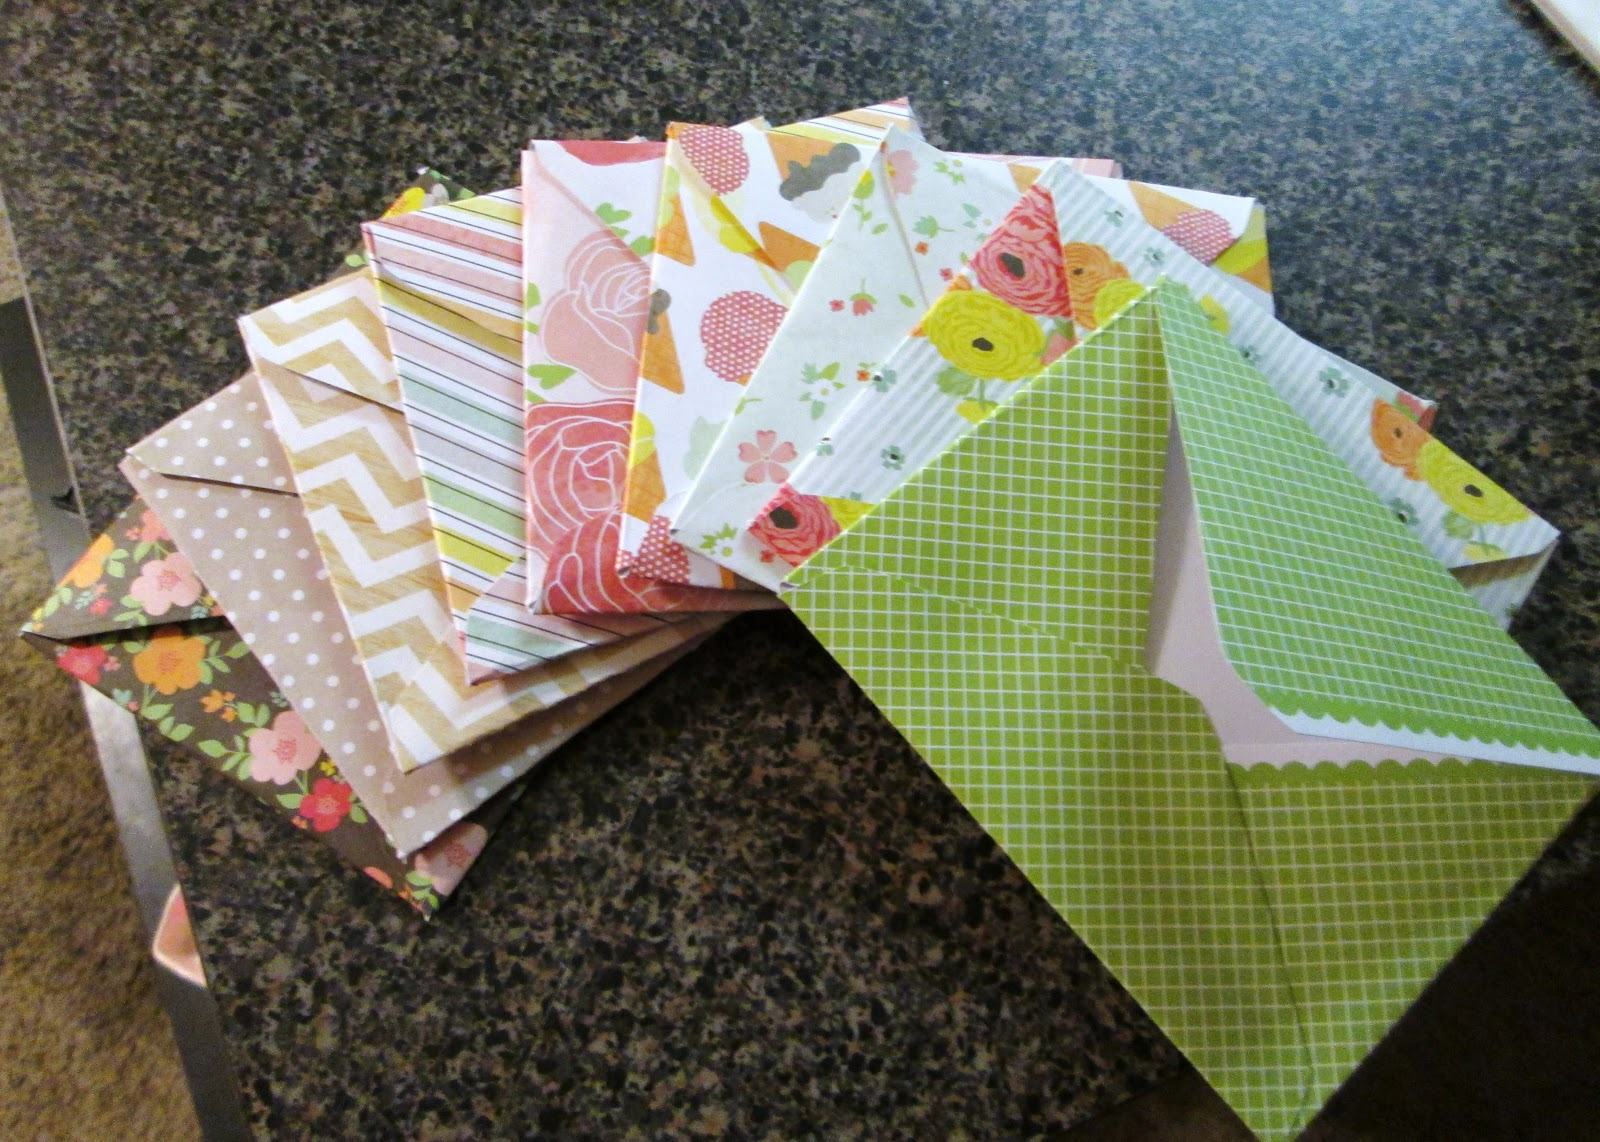 diy decorative envelopes - Decorative Envelopes